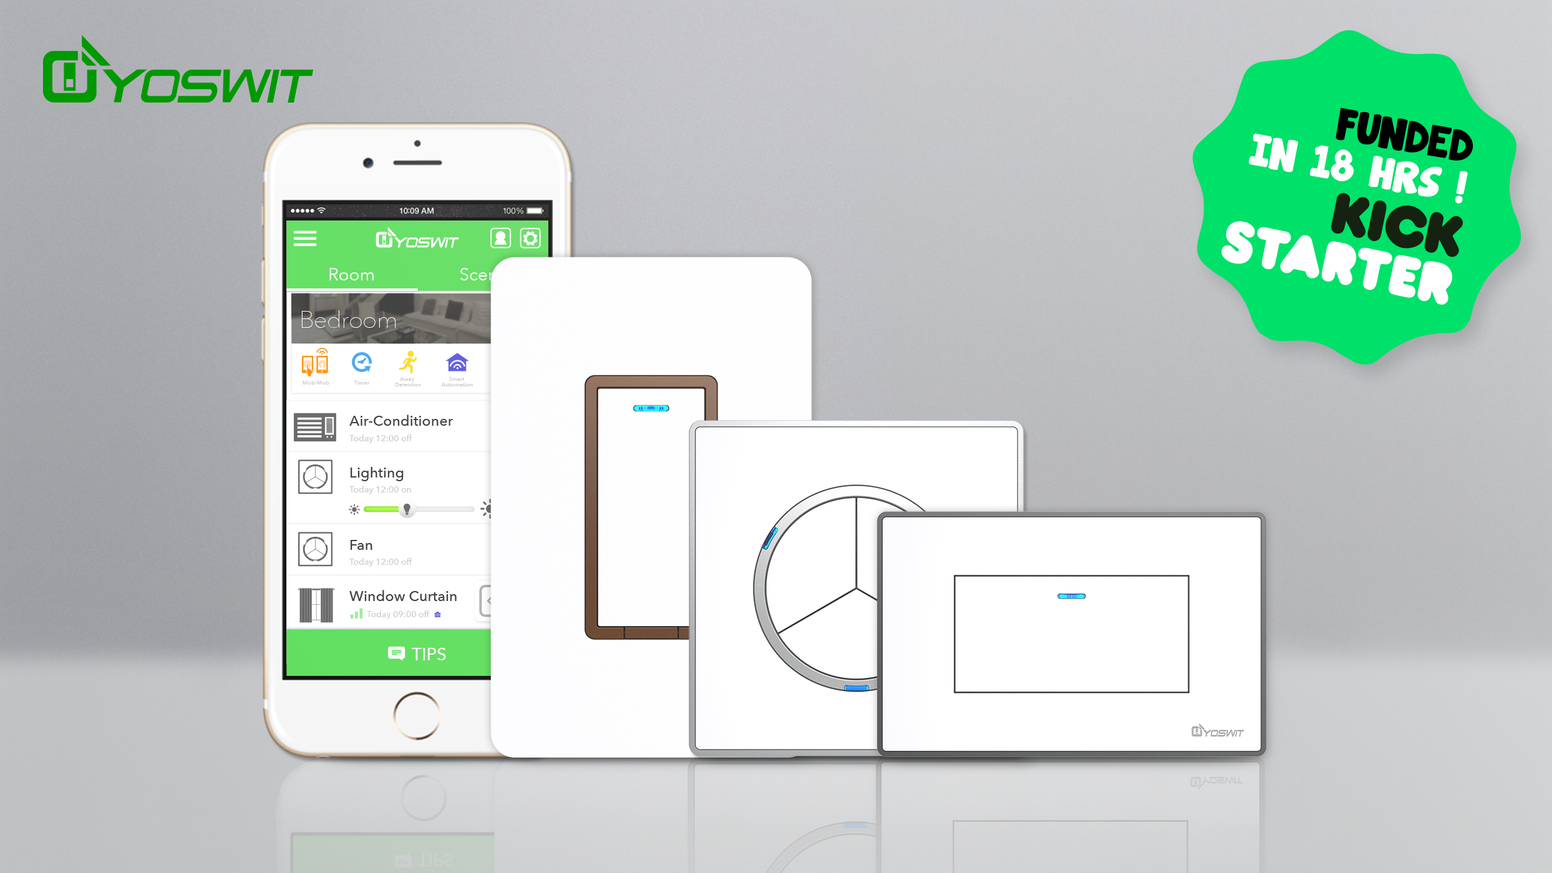 Yoswit Reinvented Smart Wall Switch By Kickstarter Leviton Framed Toggle Singlepole White Home Depot Canada The Direct Replacement Of Your Existing Supports Mesh And Remote Control Outside